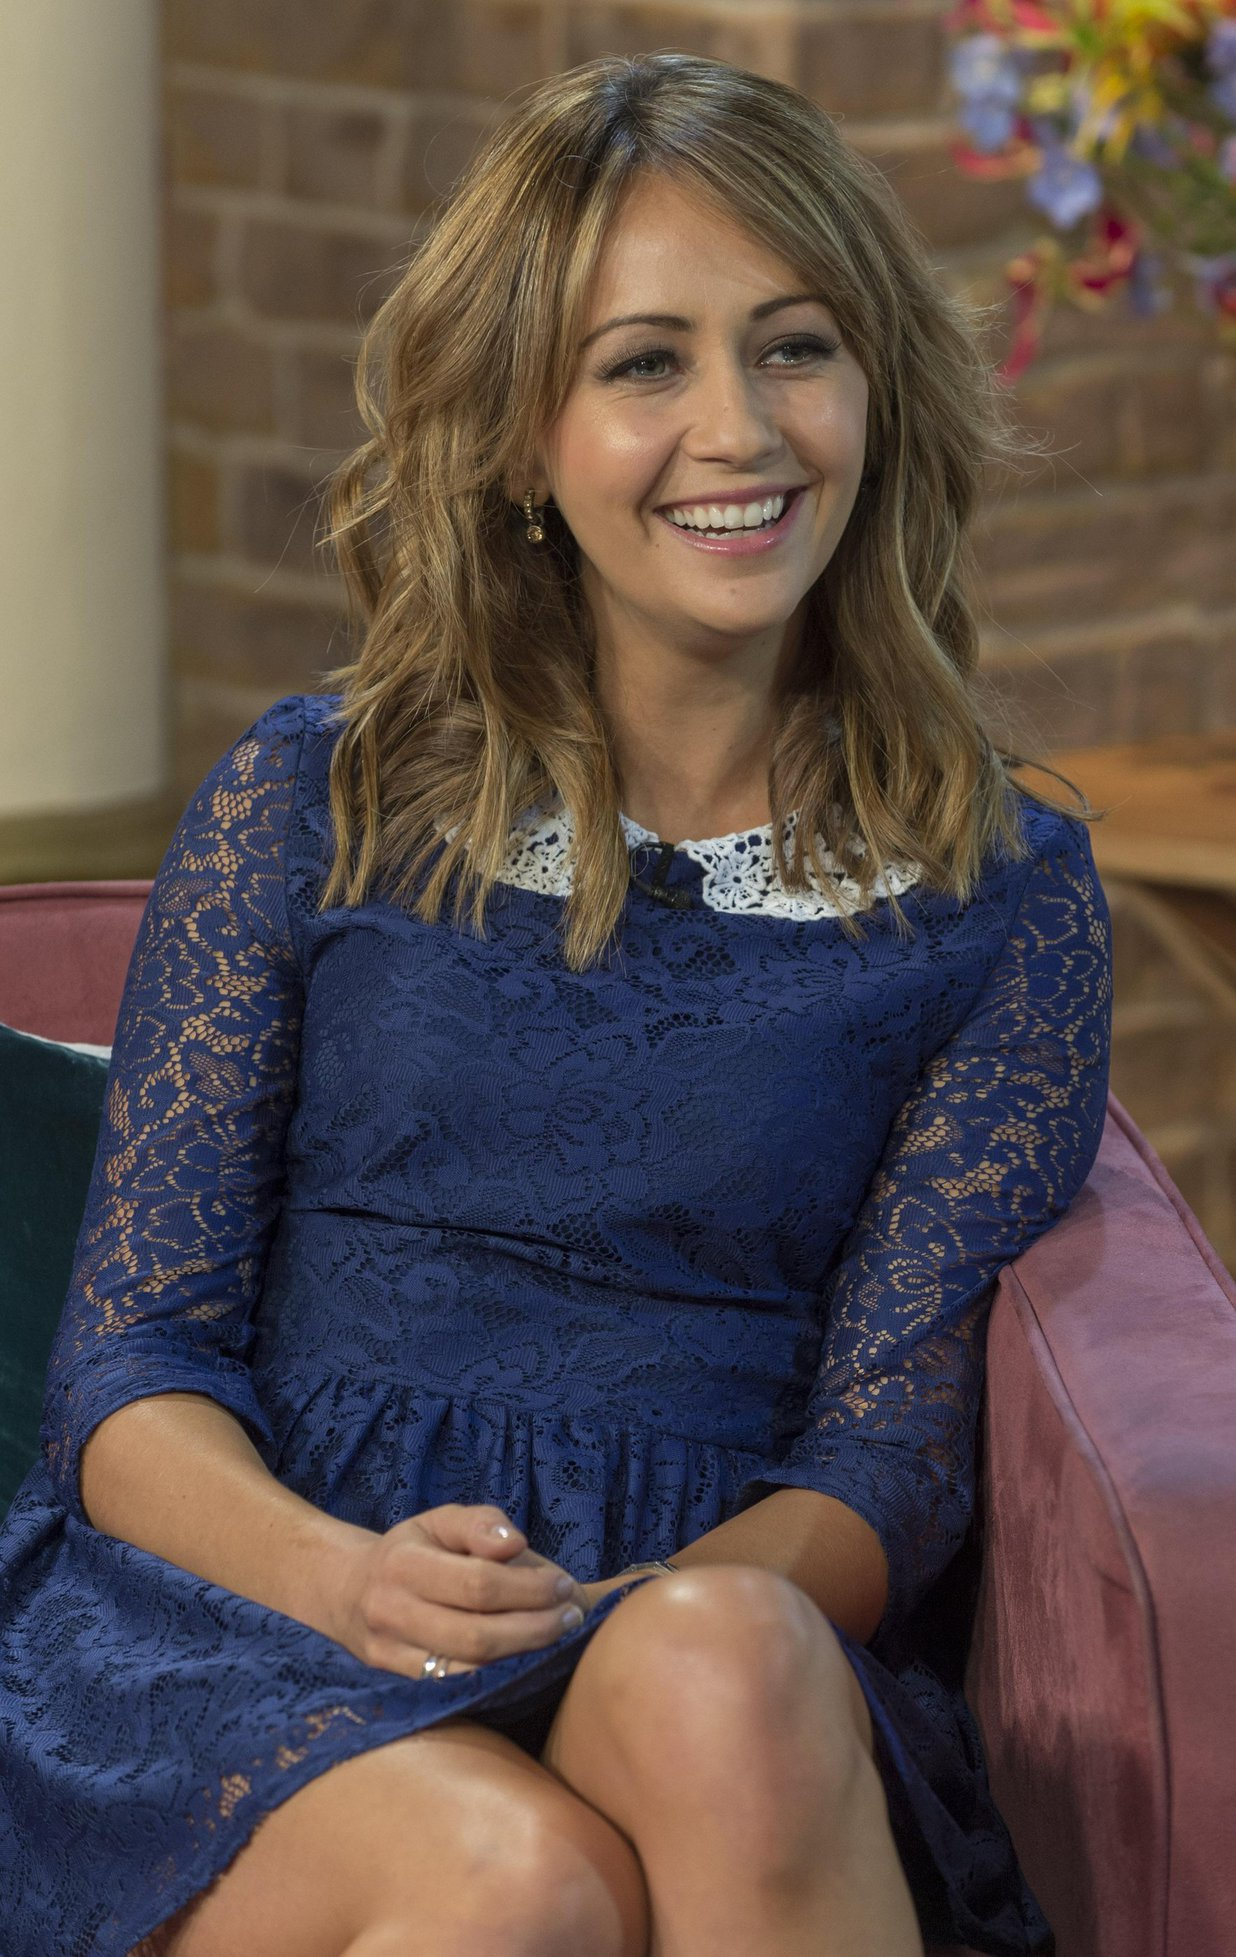 Samia Ghadie On This Morning - October 5, 2012